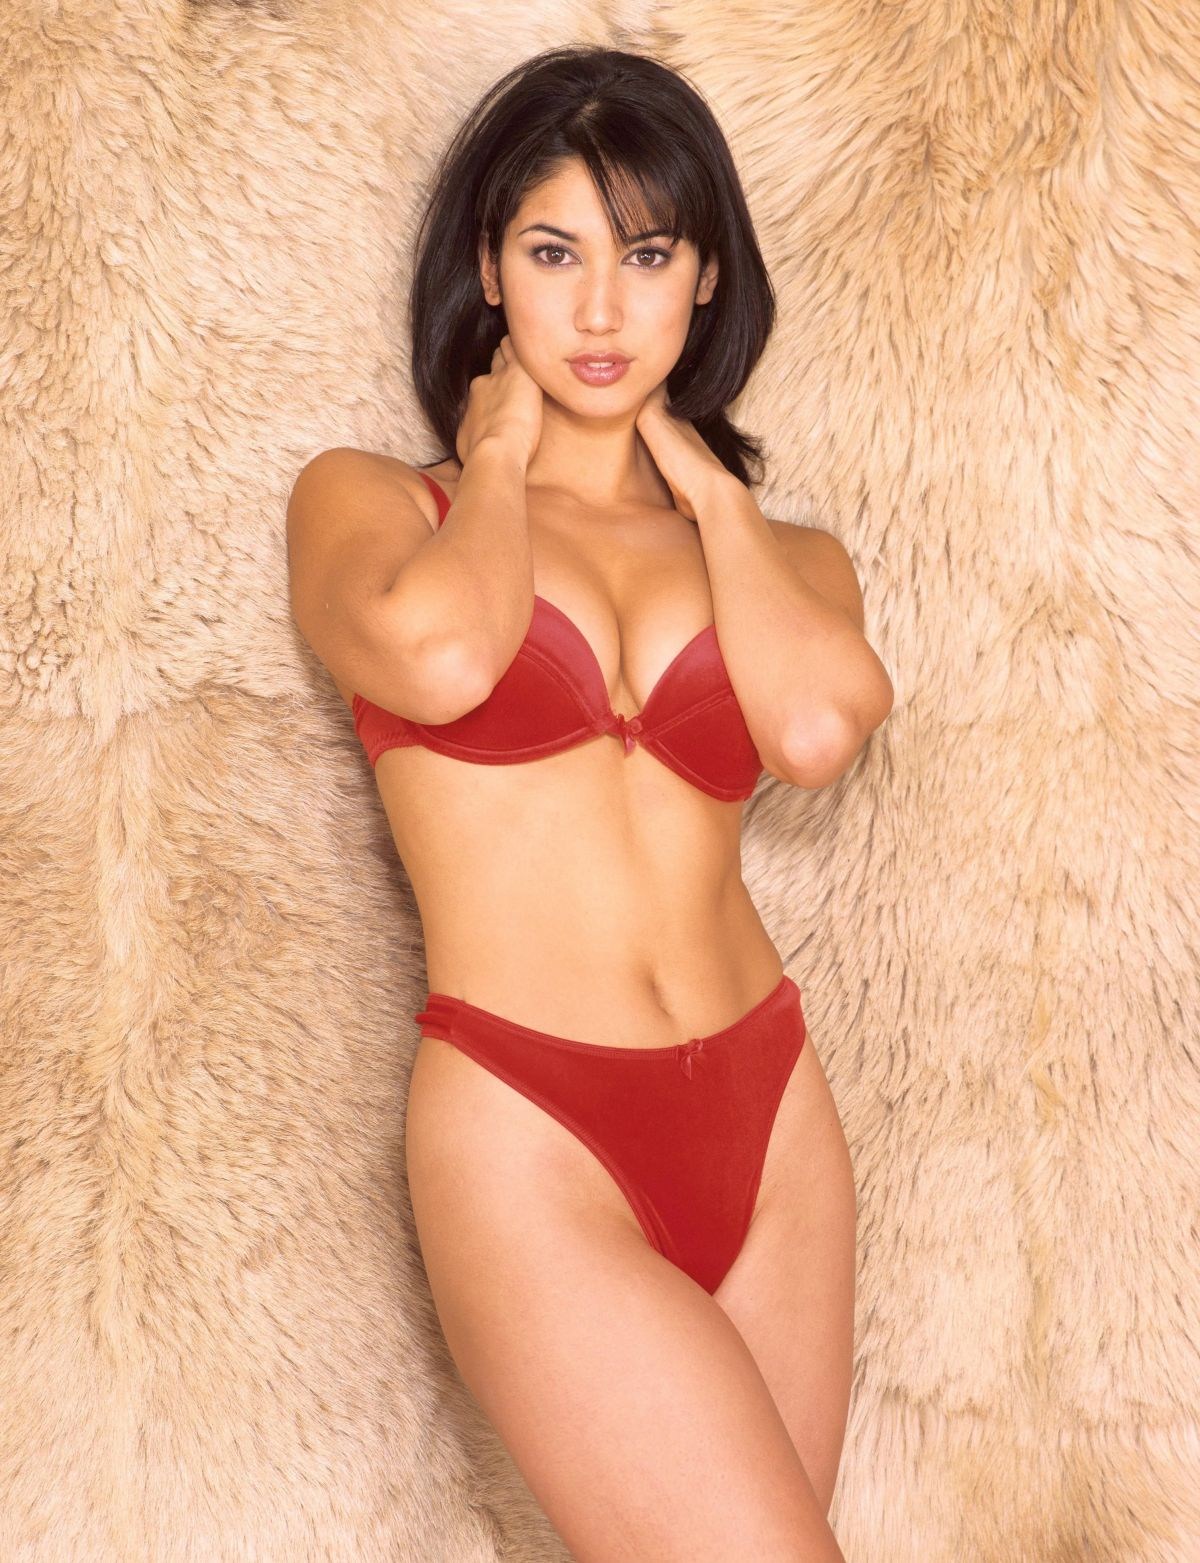 Leilani Dowding At 1998 Lingerie Jeanny Savage PS